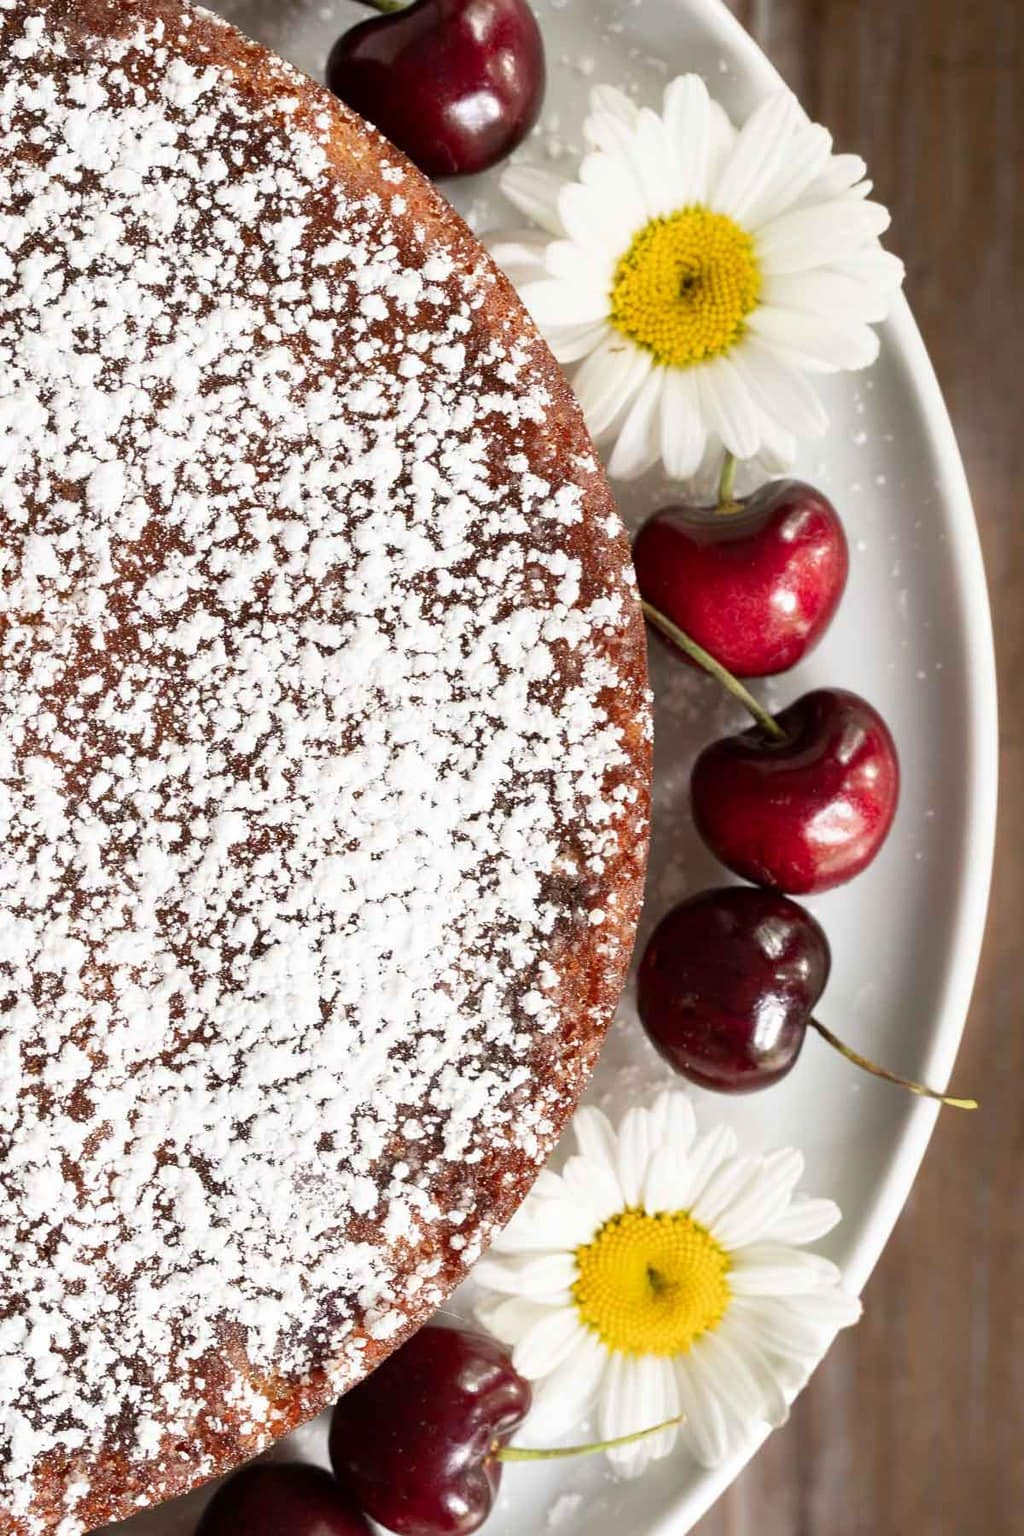 Overhead closeup vertical photo of the powdered sugar dusted top of a Ridiculously Easy Fresh Cherry Almond Cake decorated with fresh whole cherries and daisies.